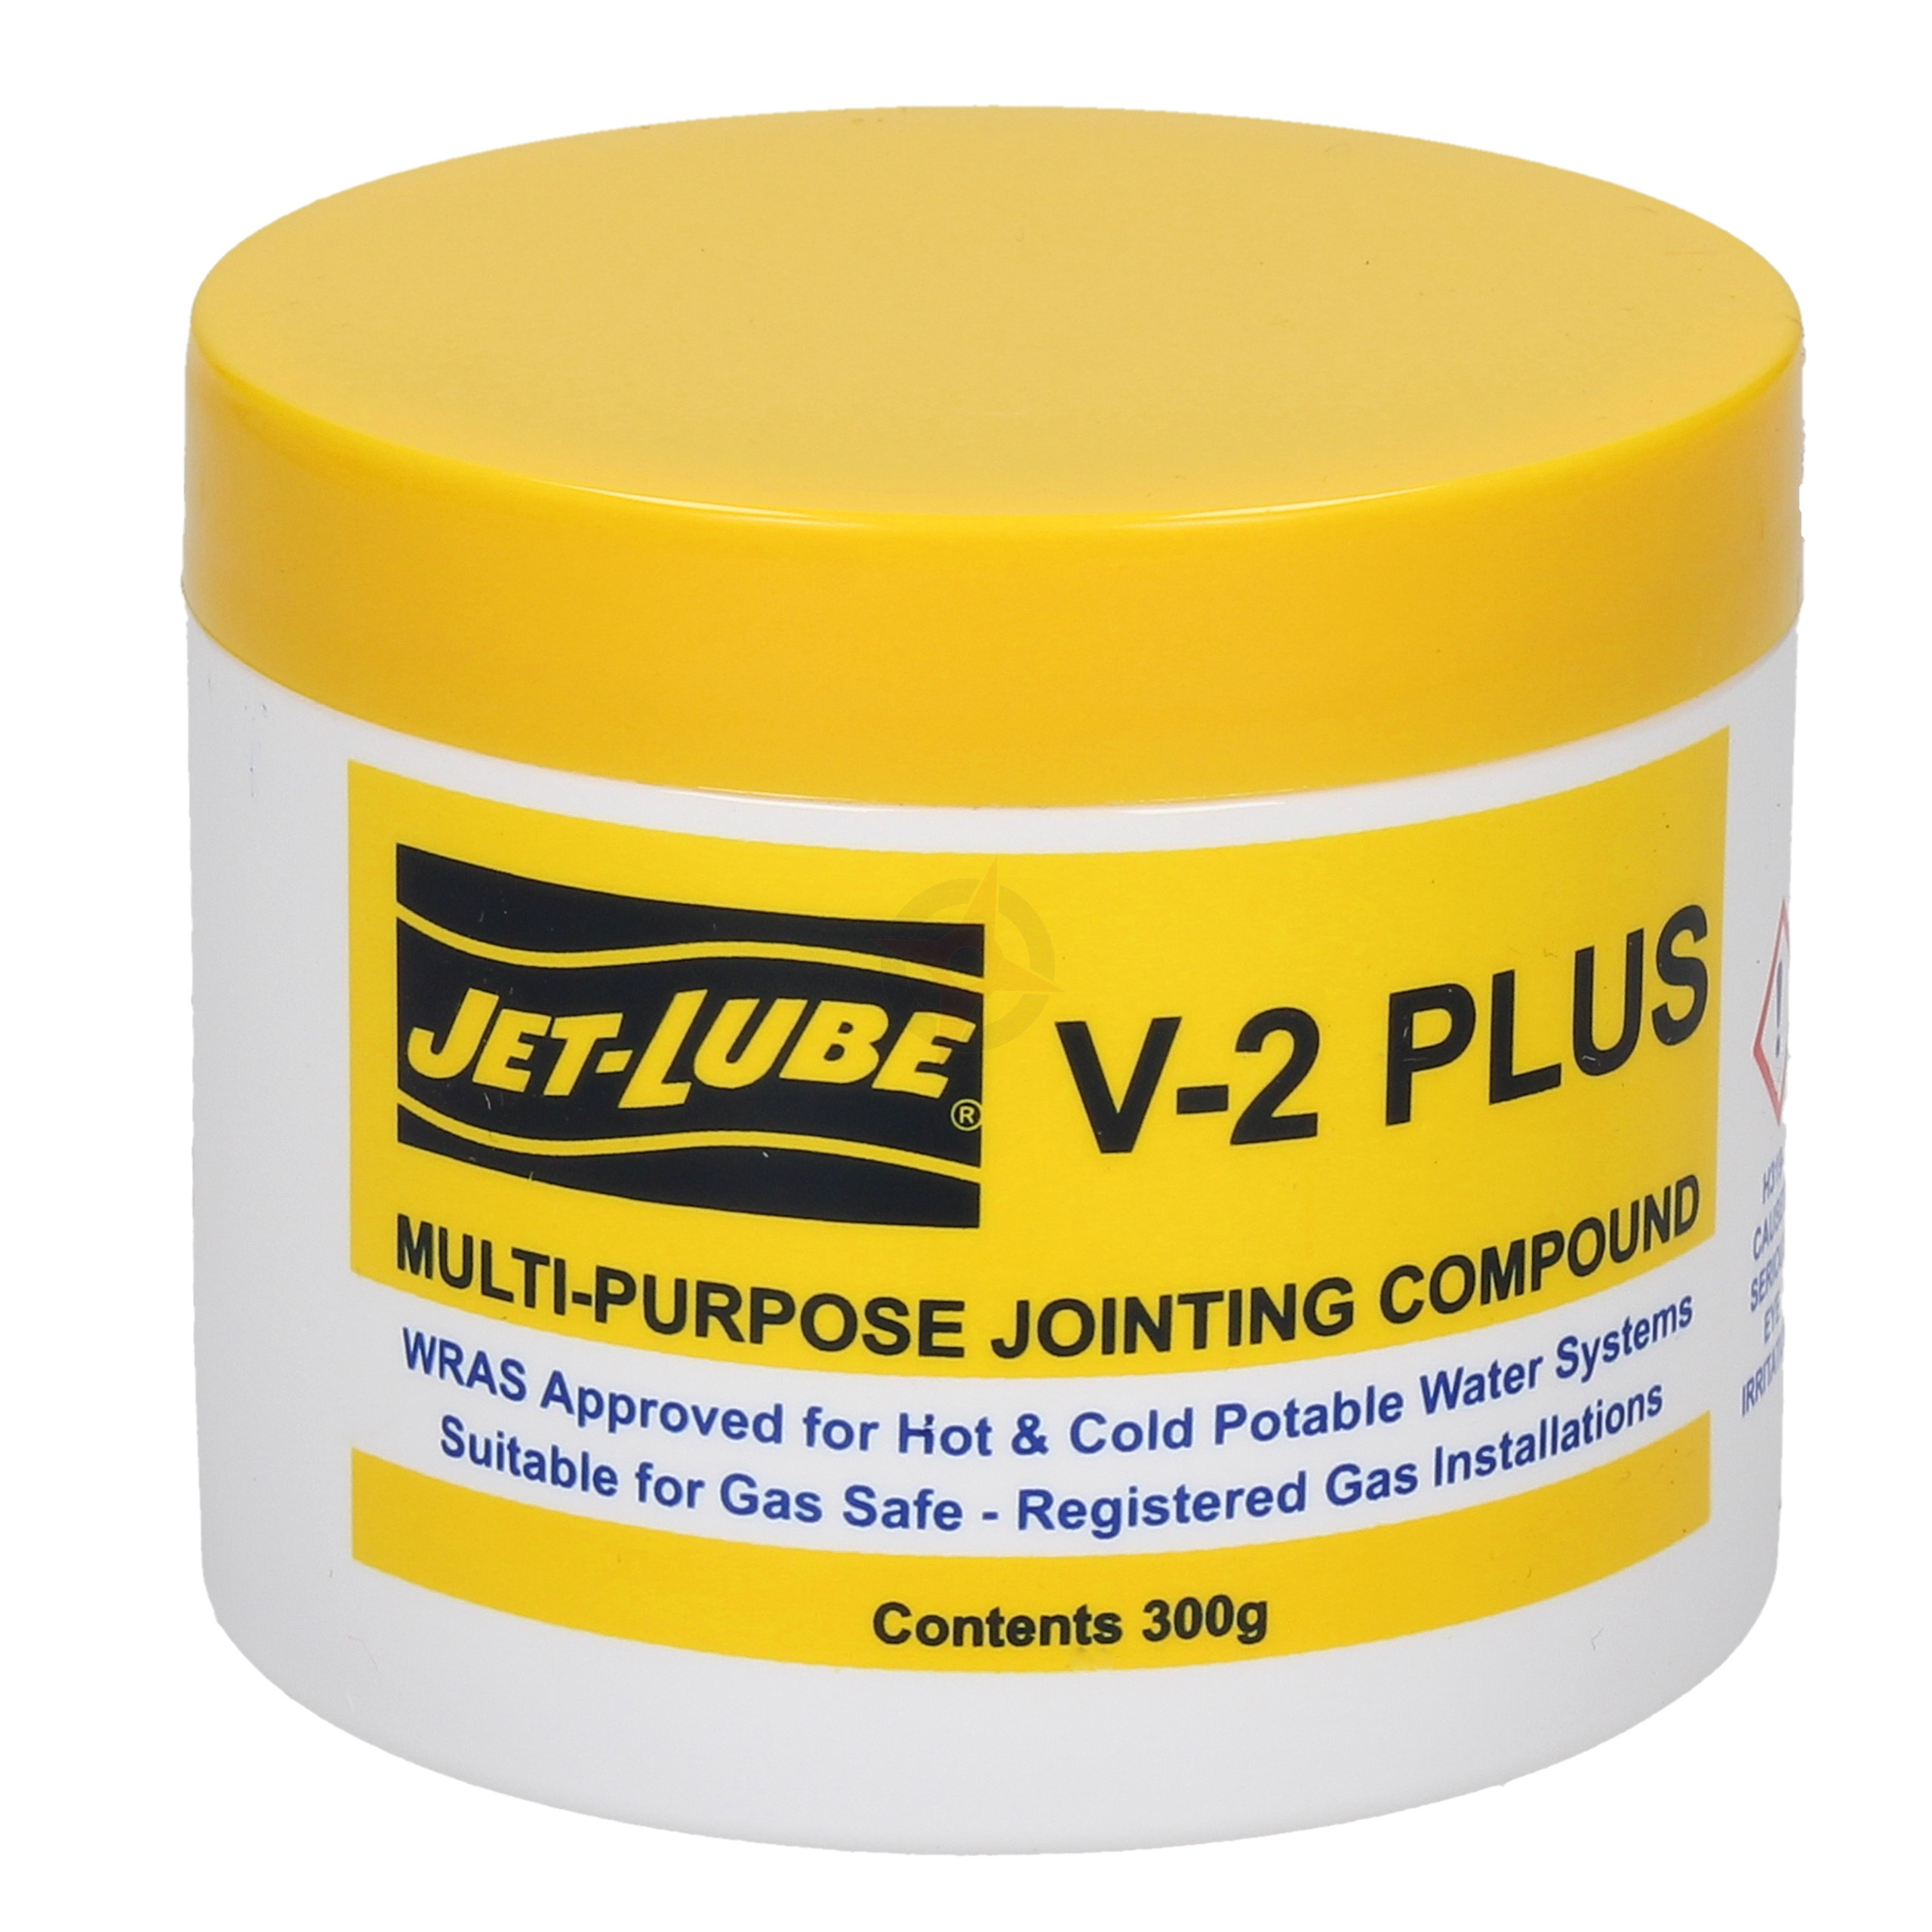 Jet-Lube V2 Plus Jointing Compound - 300g